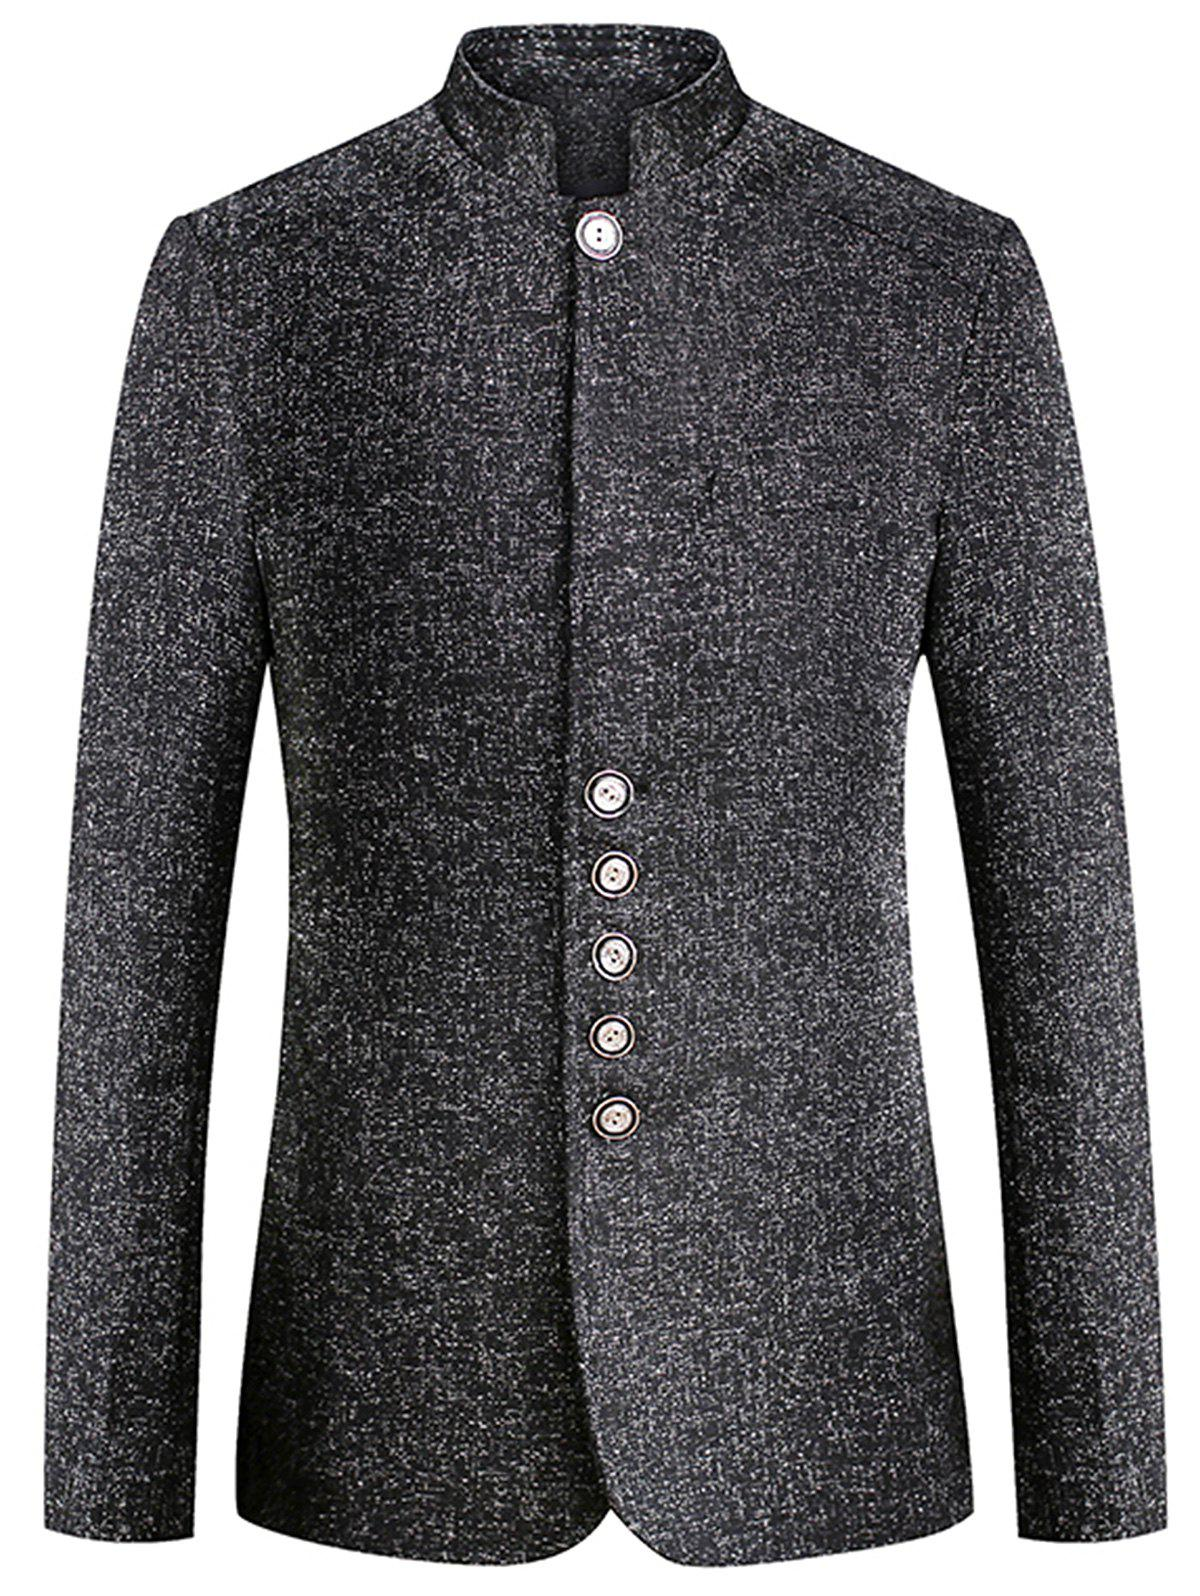 Discount Mandarin Collar Wool Blend Single Breasted Blazer